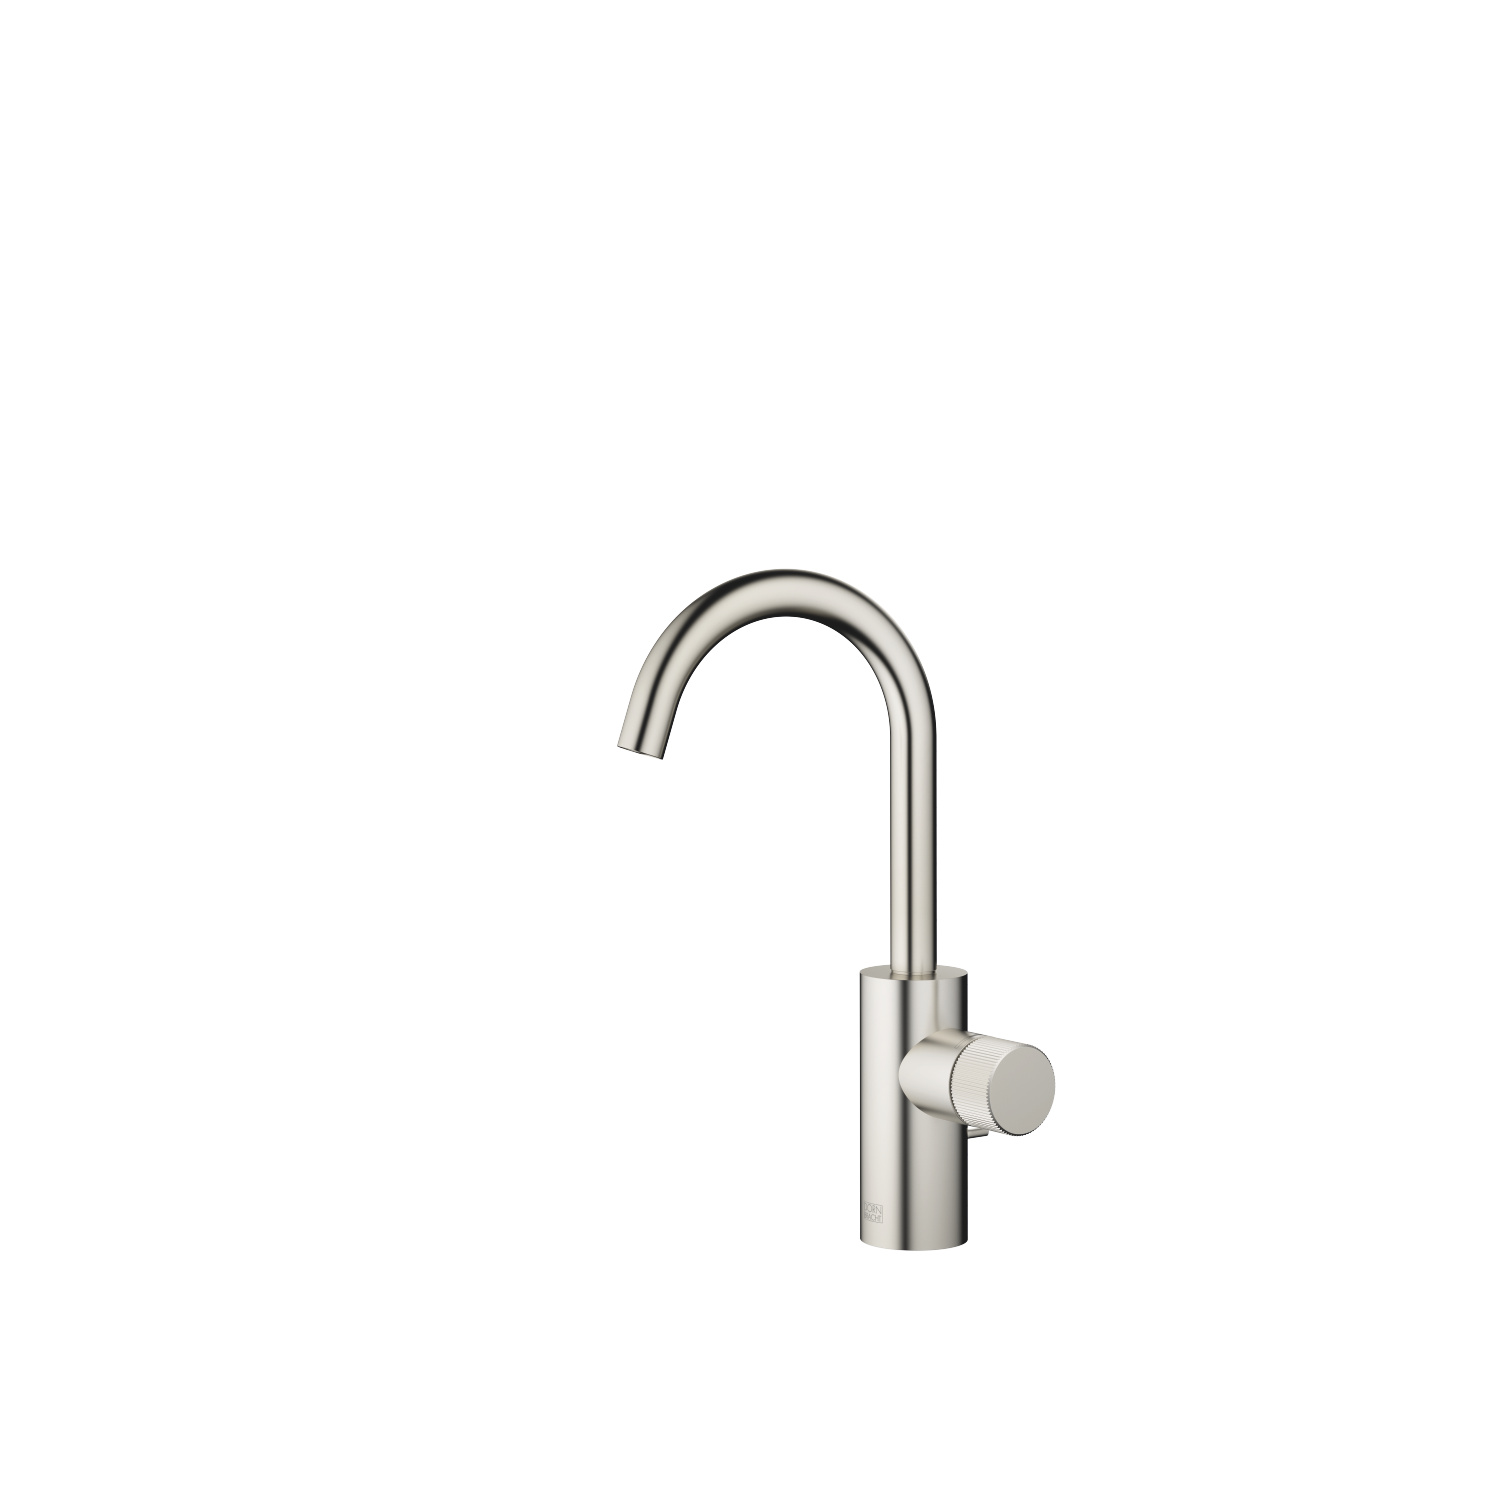 META PURE Single-lever basin mixer with pop-up waste - platinum matt - 33 510 665-06